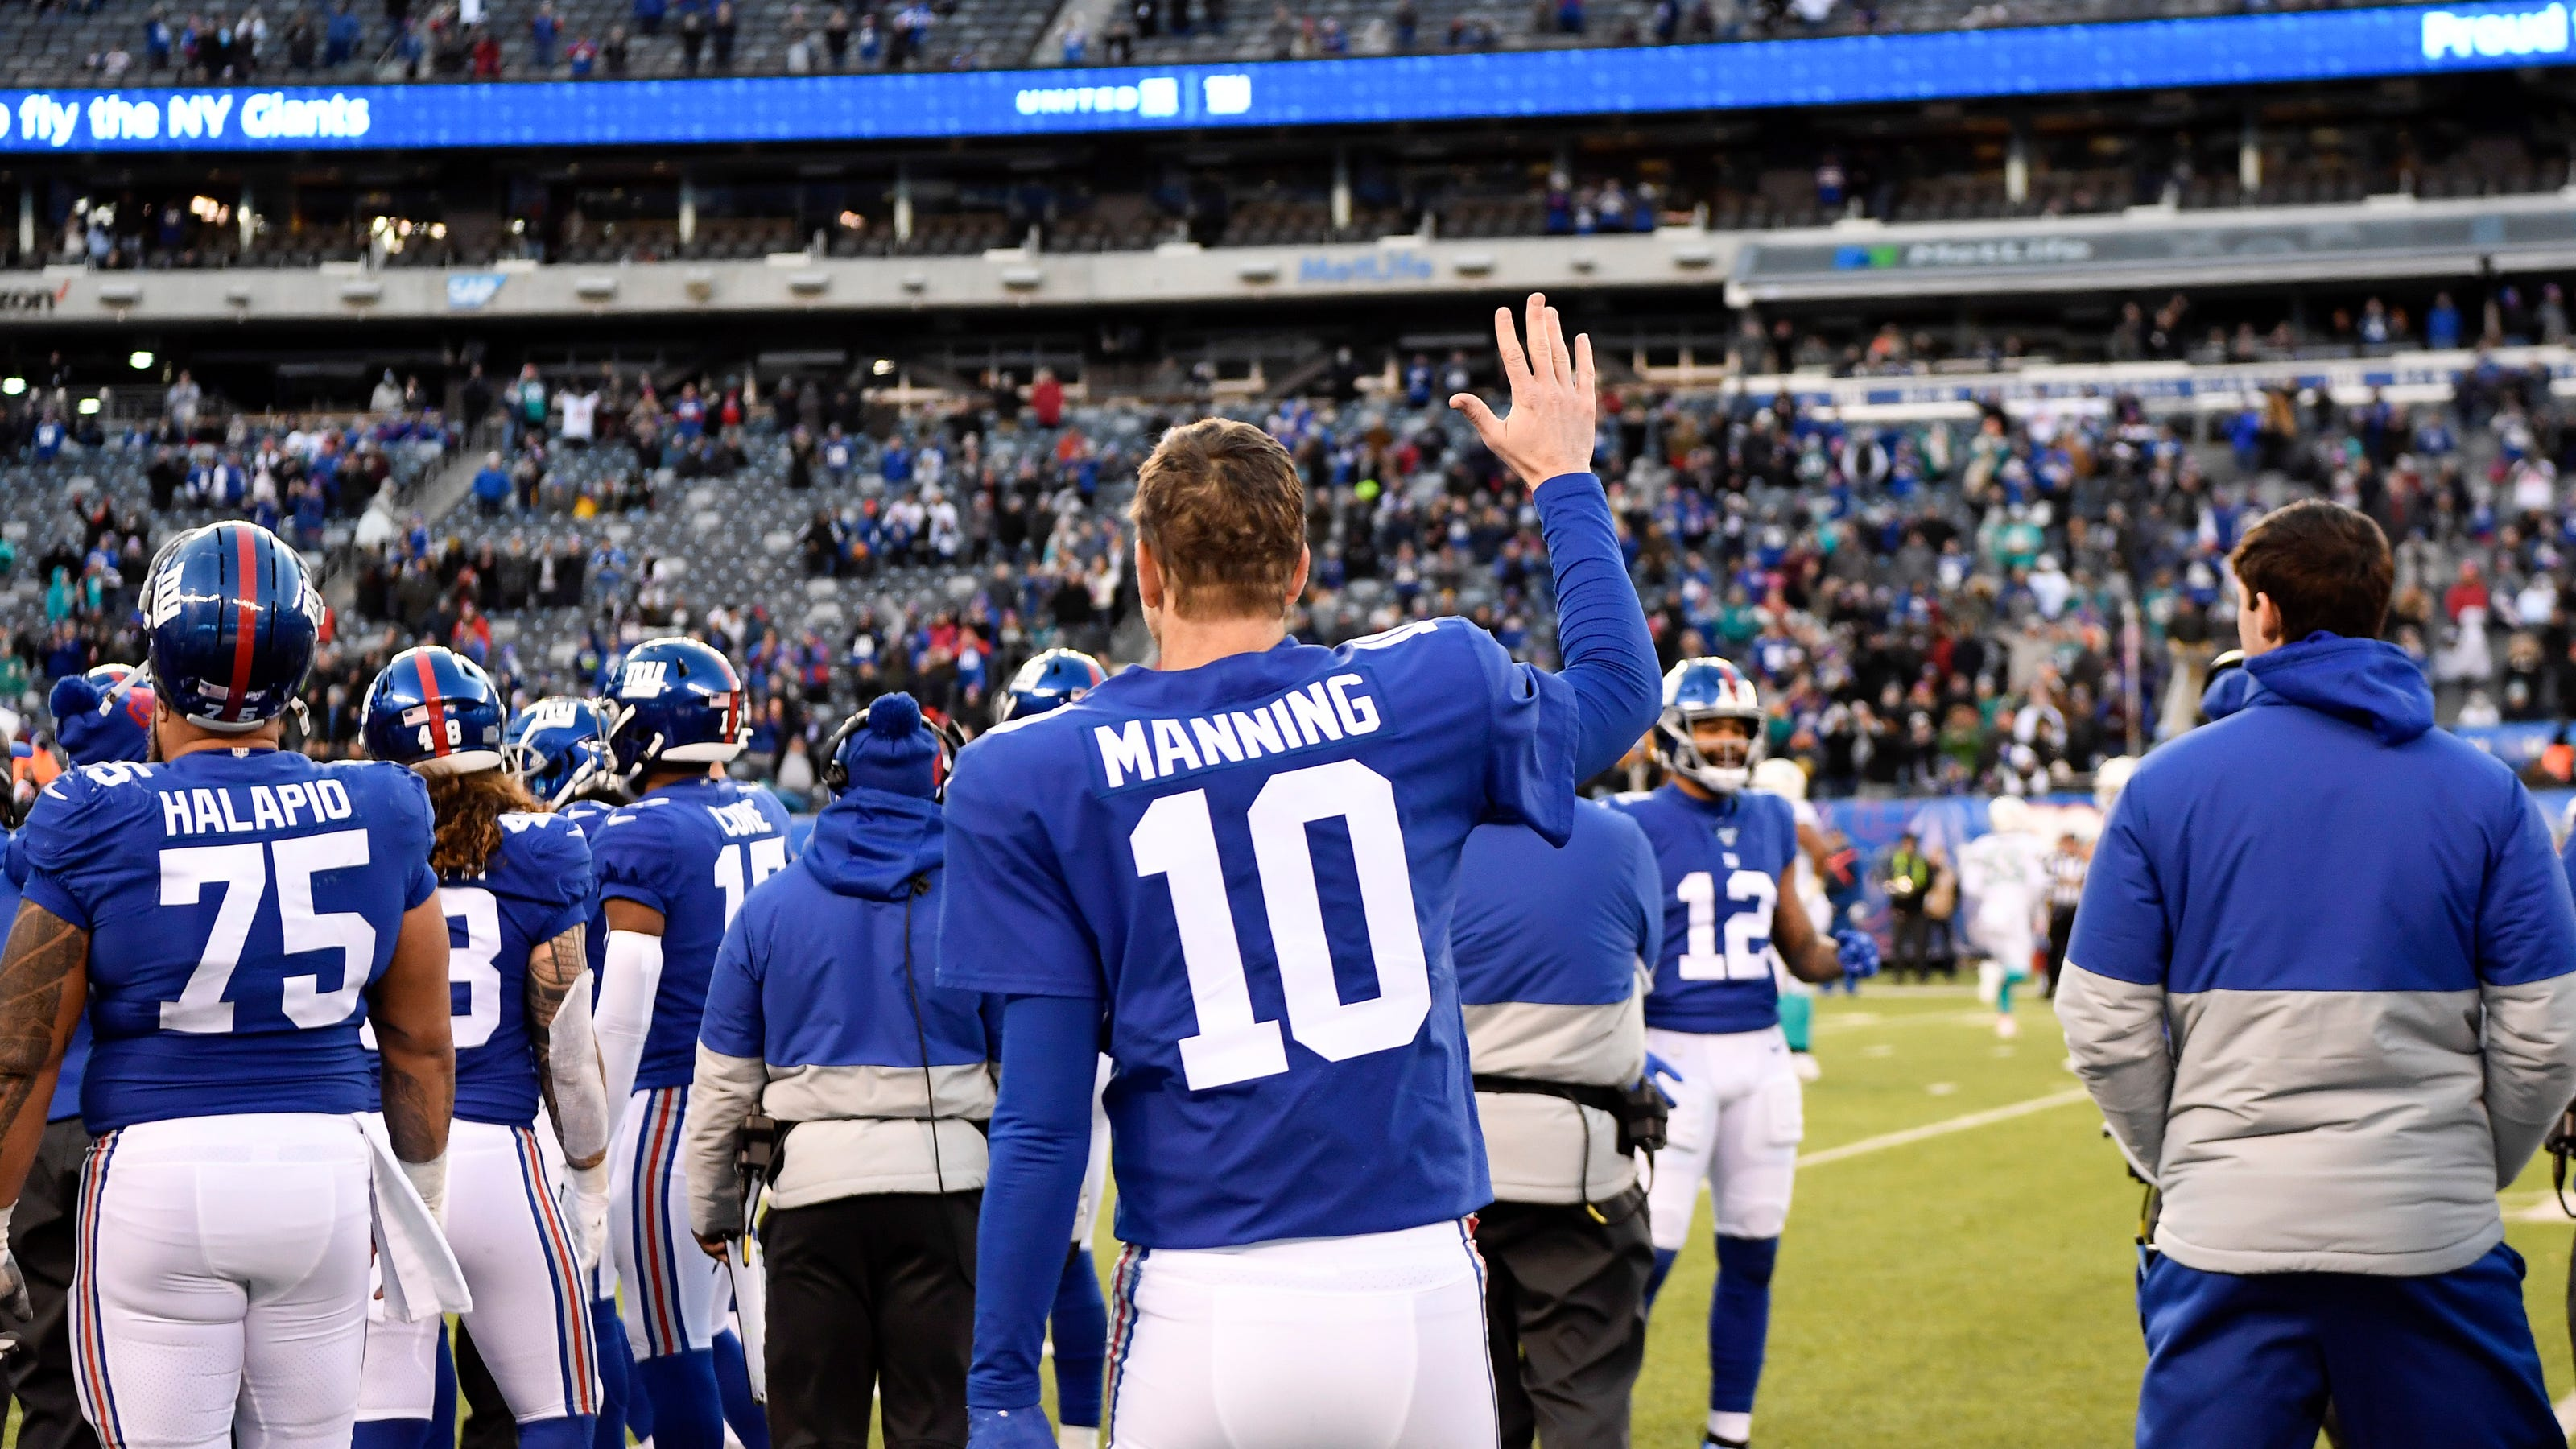 Eli Manning gets emotional in possible New York Giants farewell